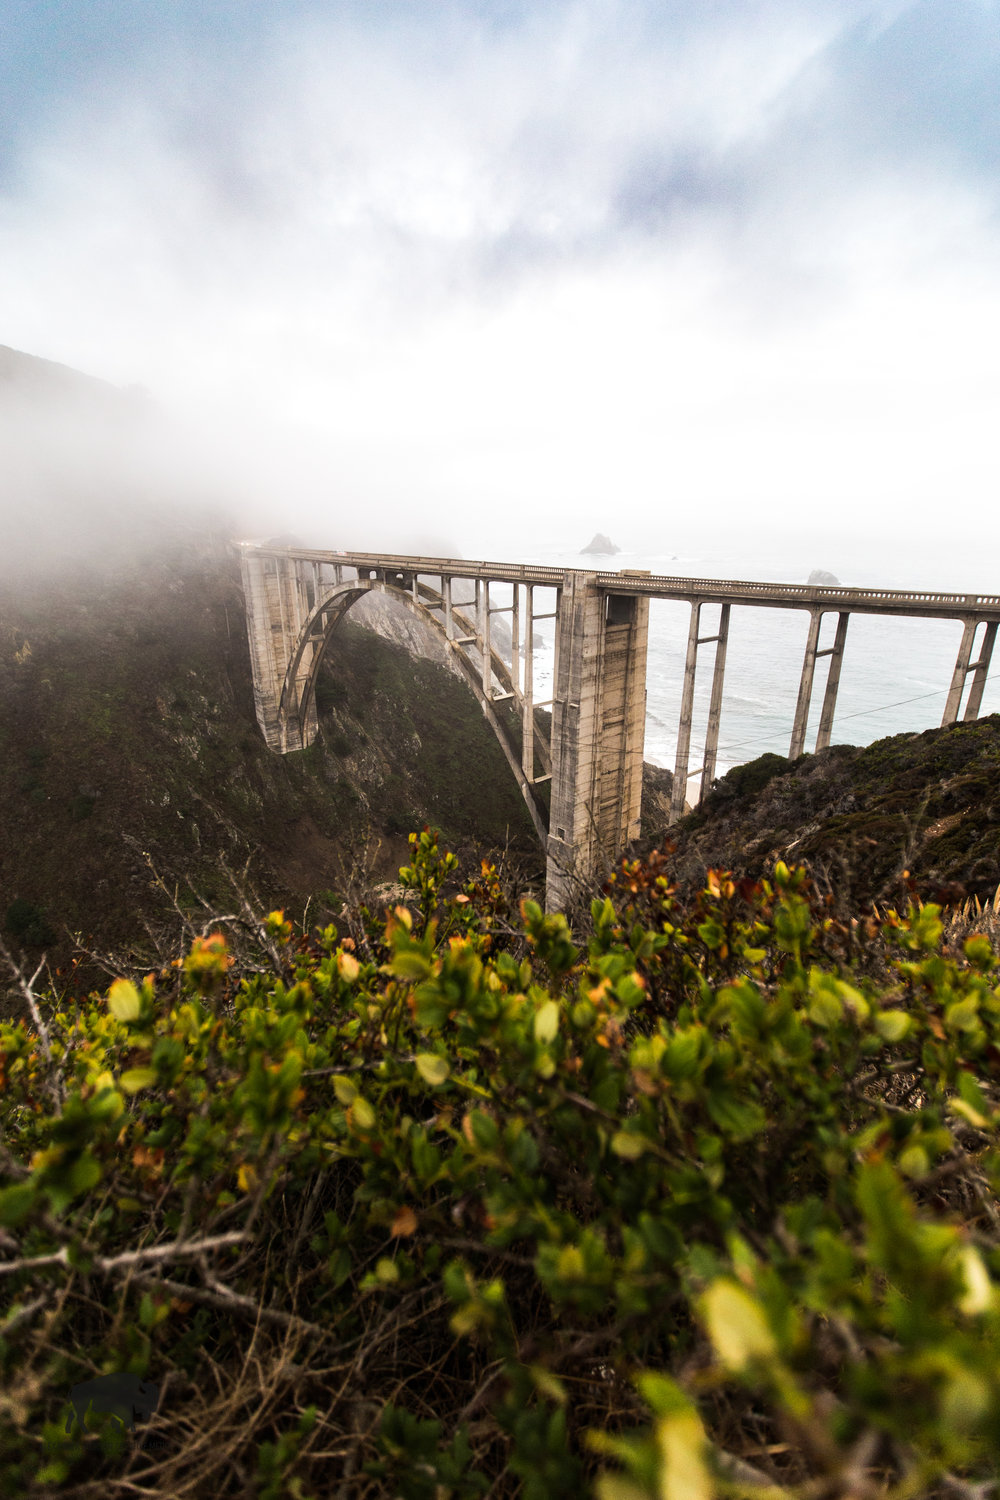 Bixby Bridge on the CA1 South of Monterey, California.